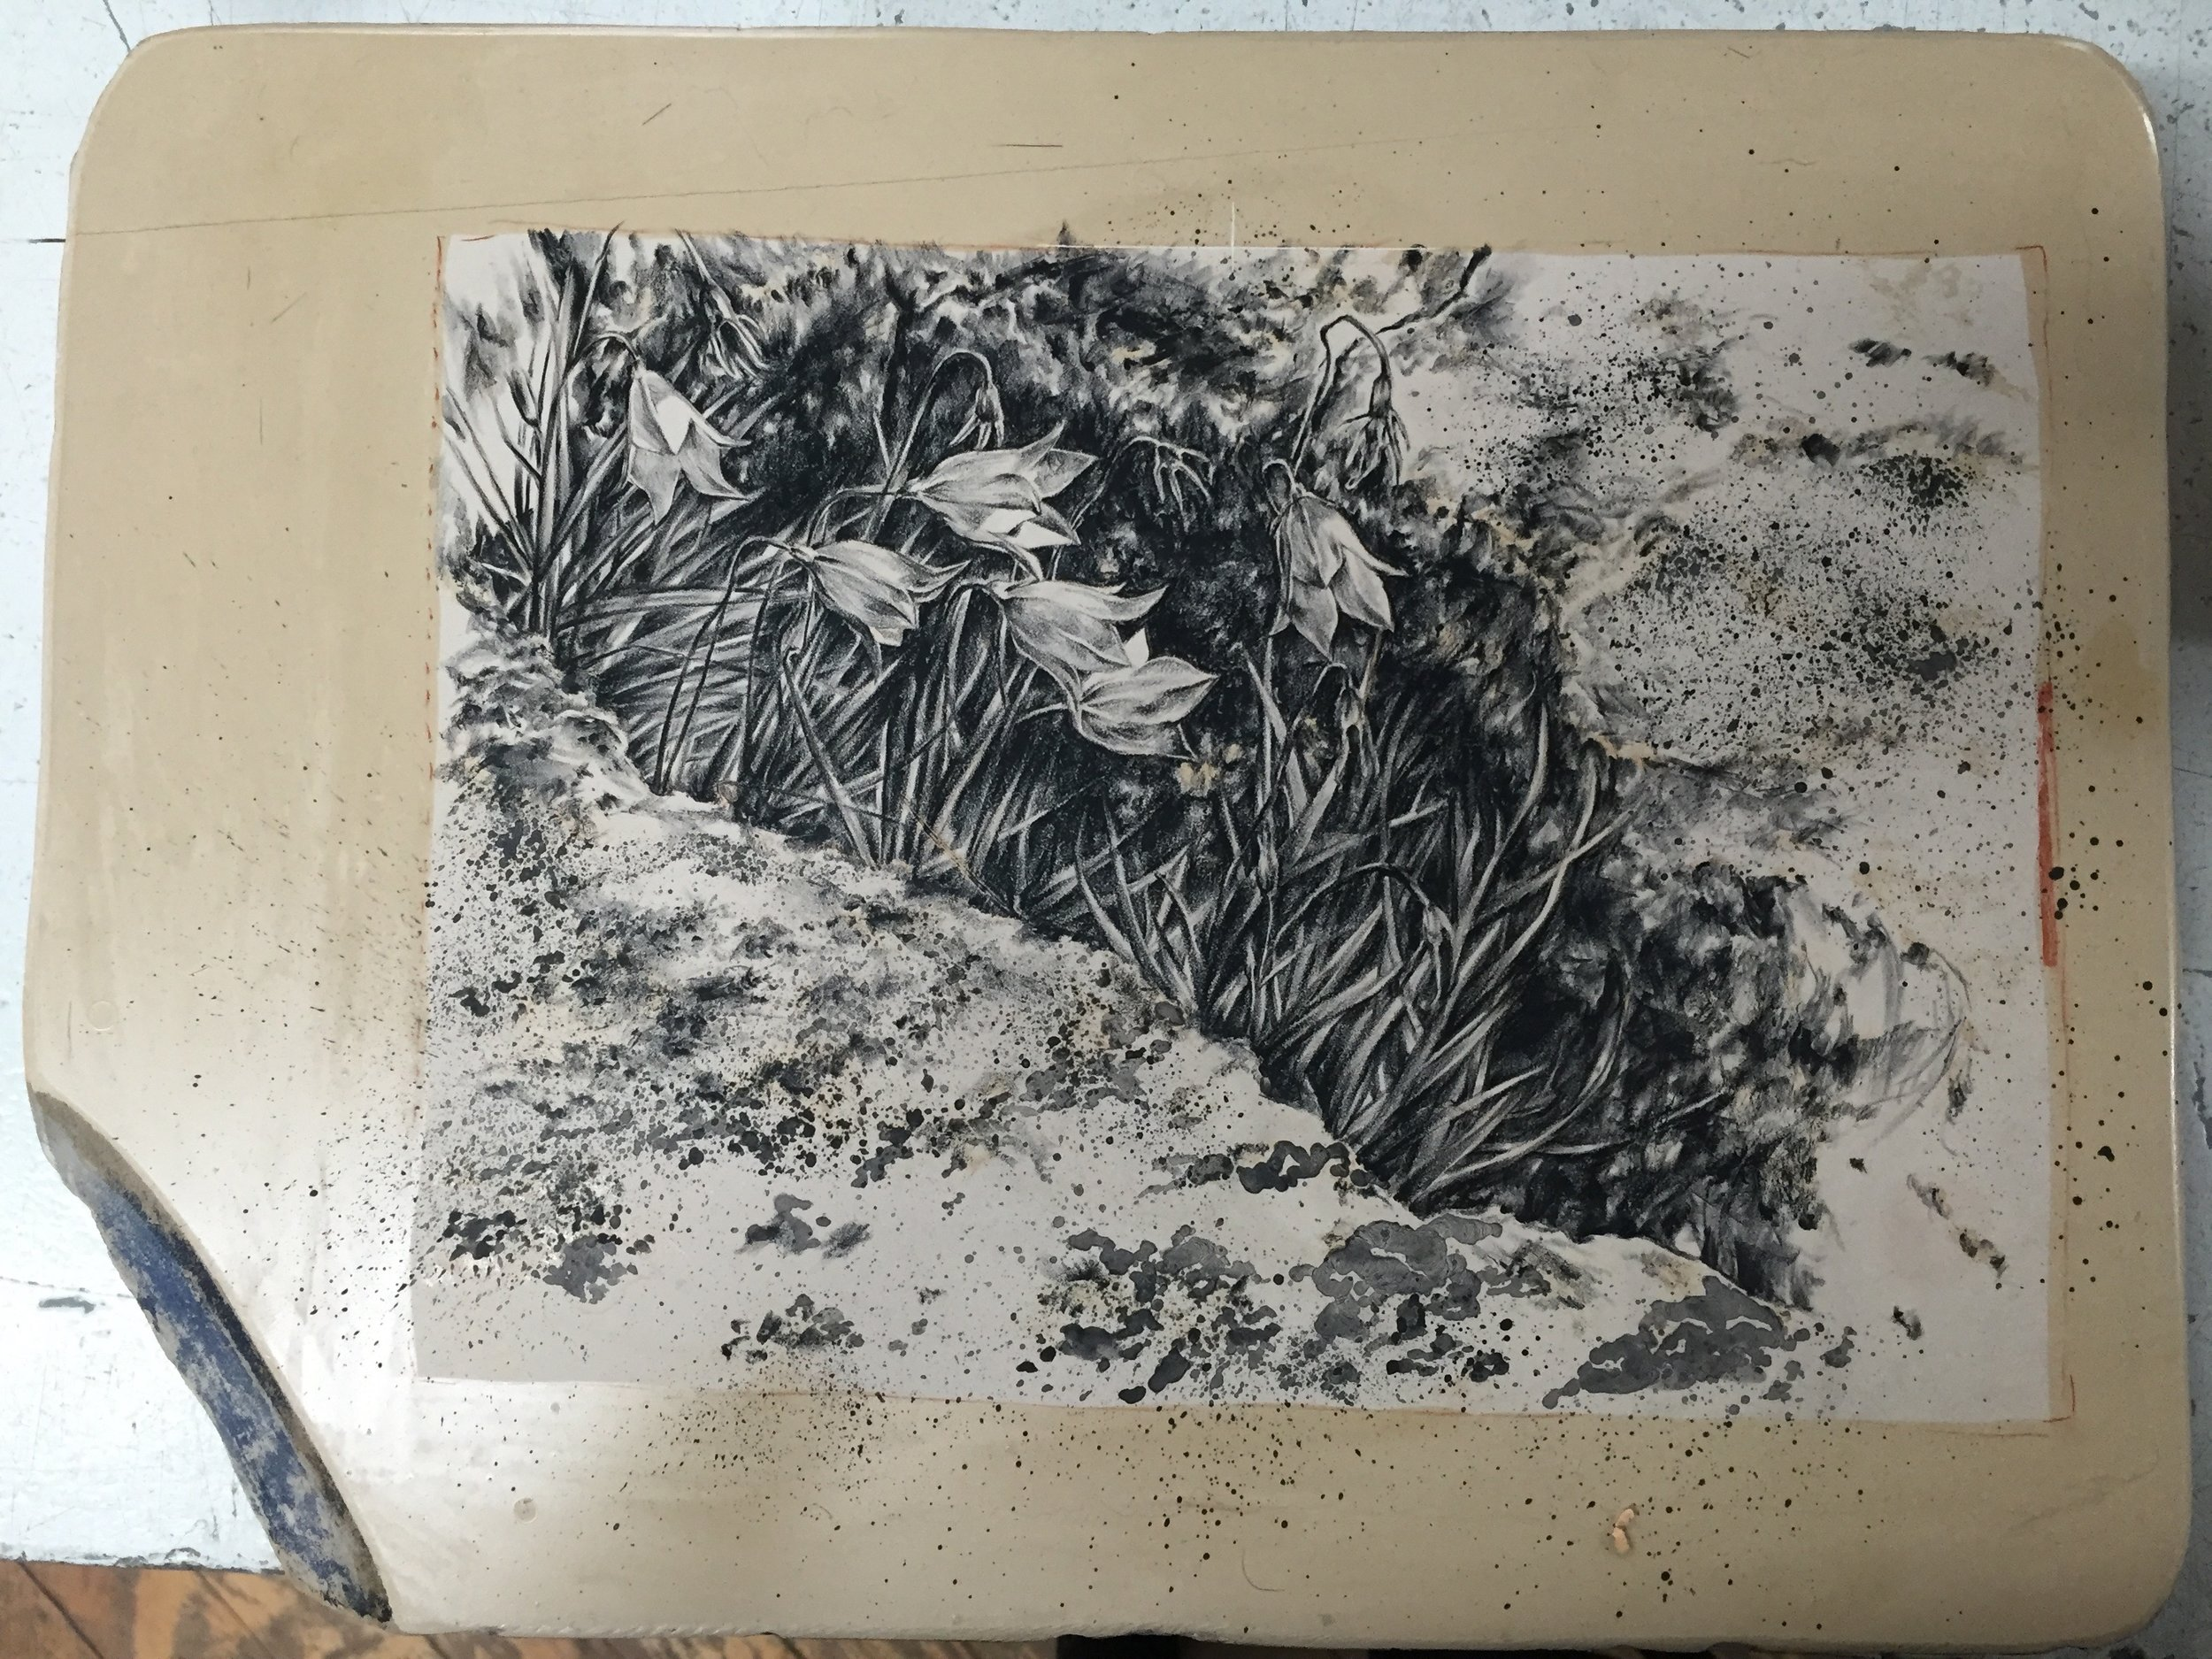 completed drawing on stone, pre-etching